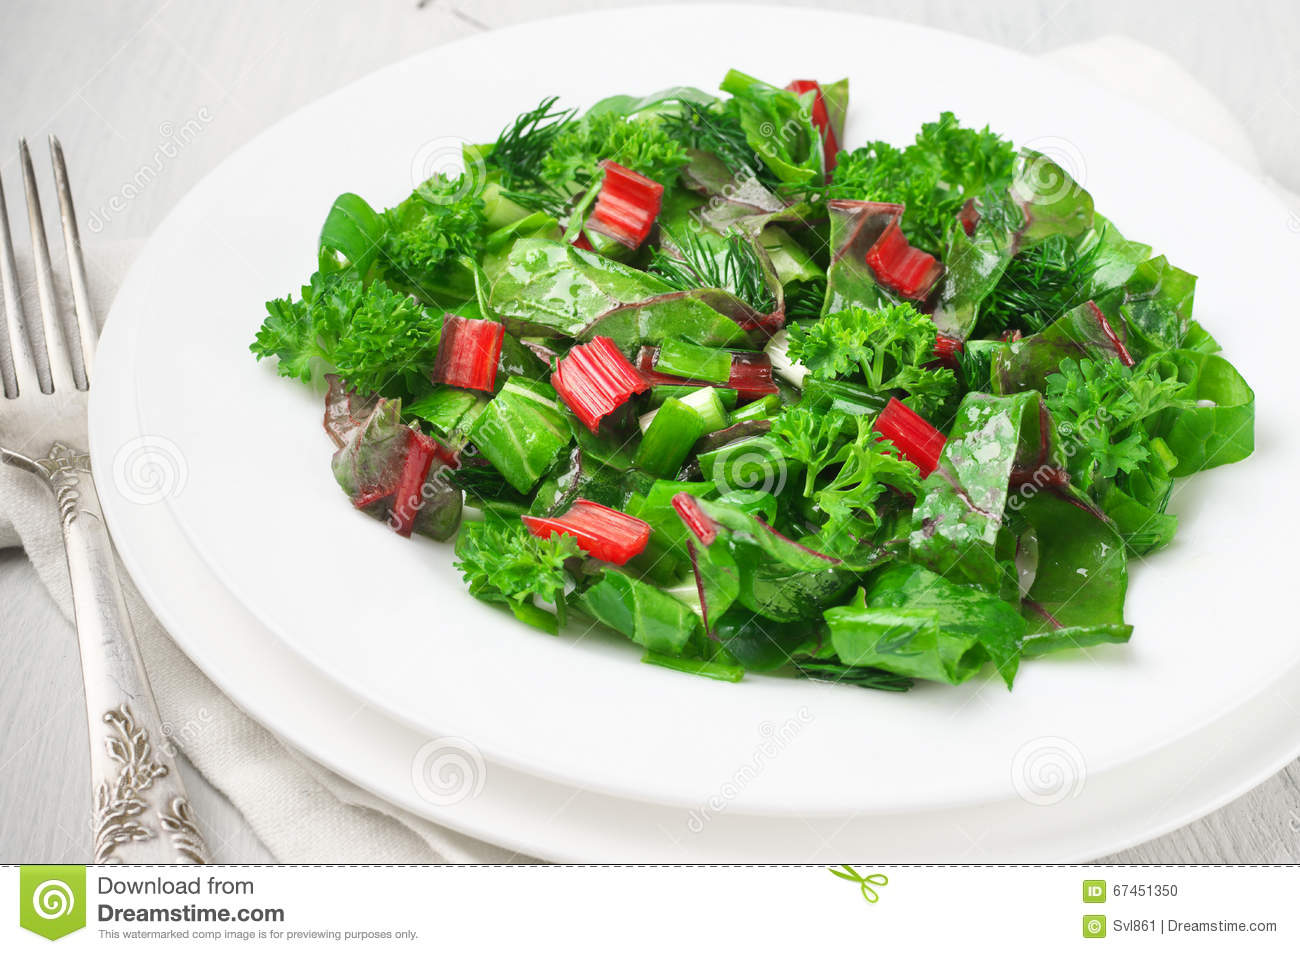 Chard Dill Fresh Leafy Lettuce Napkin Onion Parsley Plate Salad Spring Tatsoi Vegetables